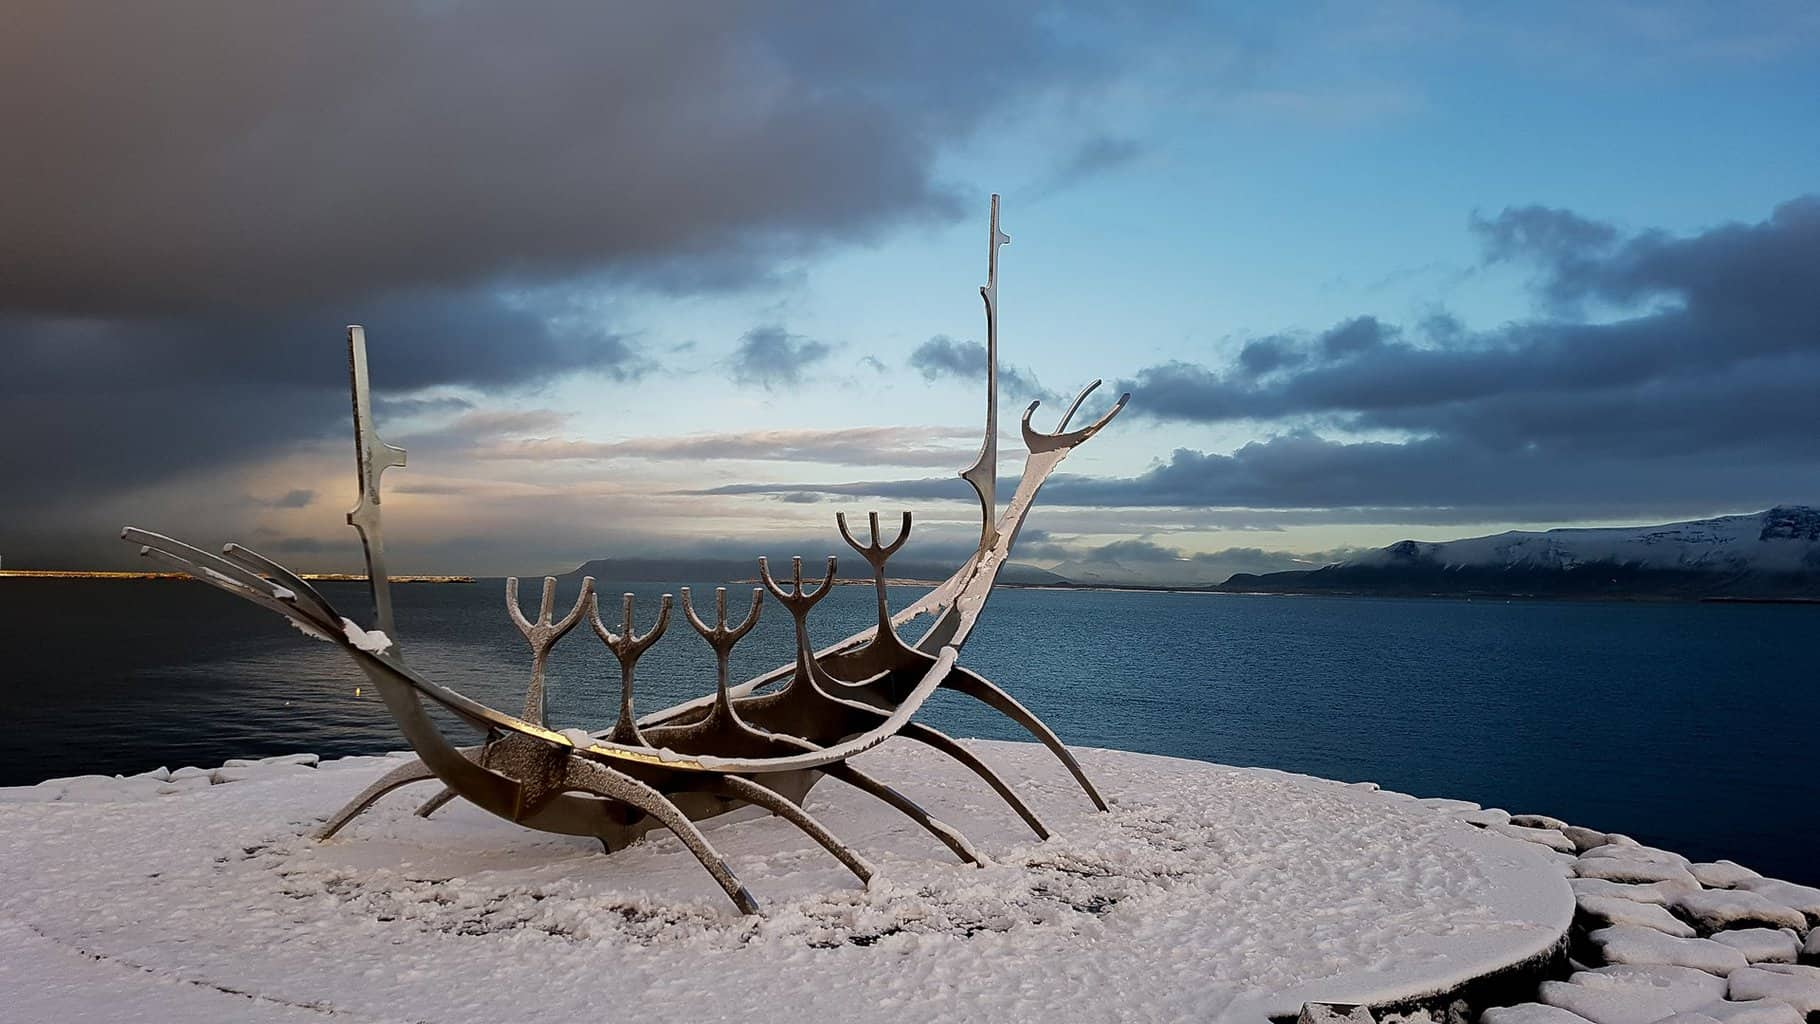 A sculpture representing a Viking ship in Reykjavik, Iceland.